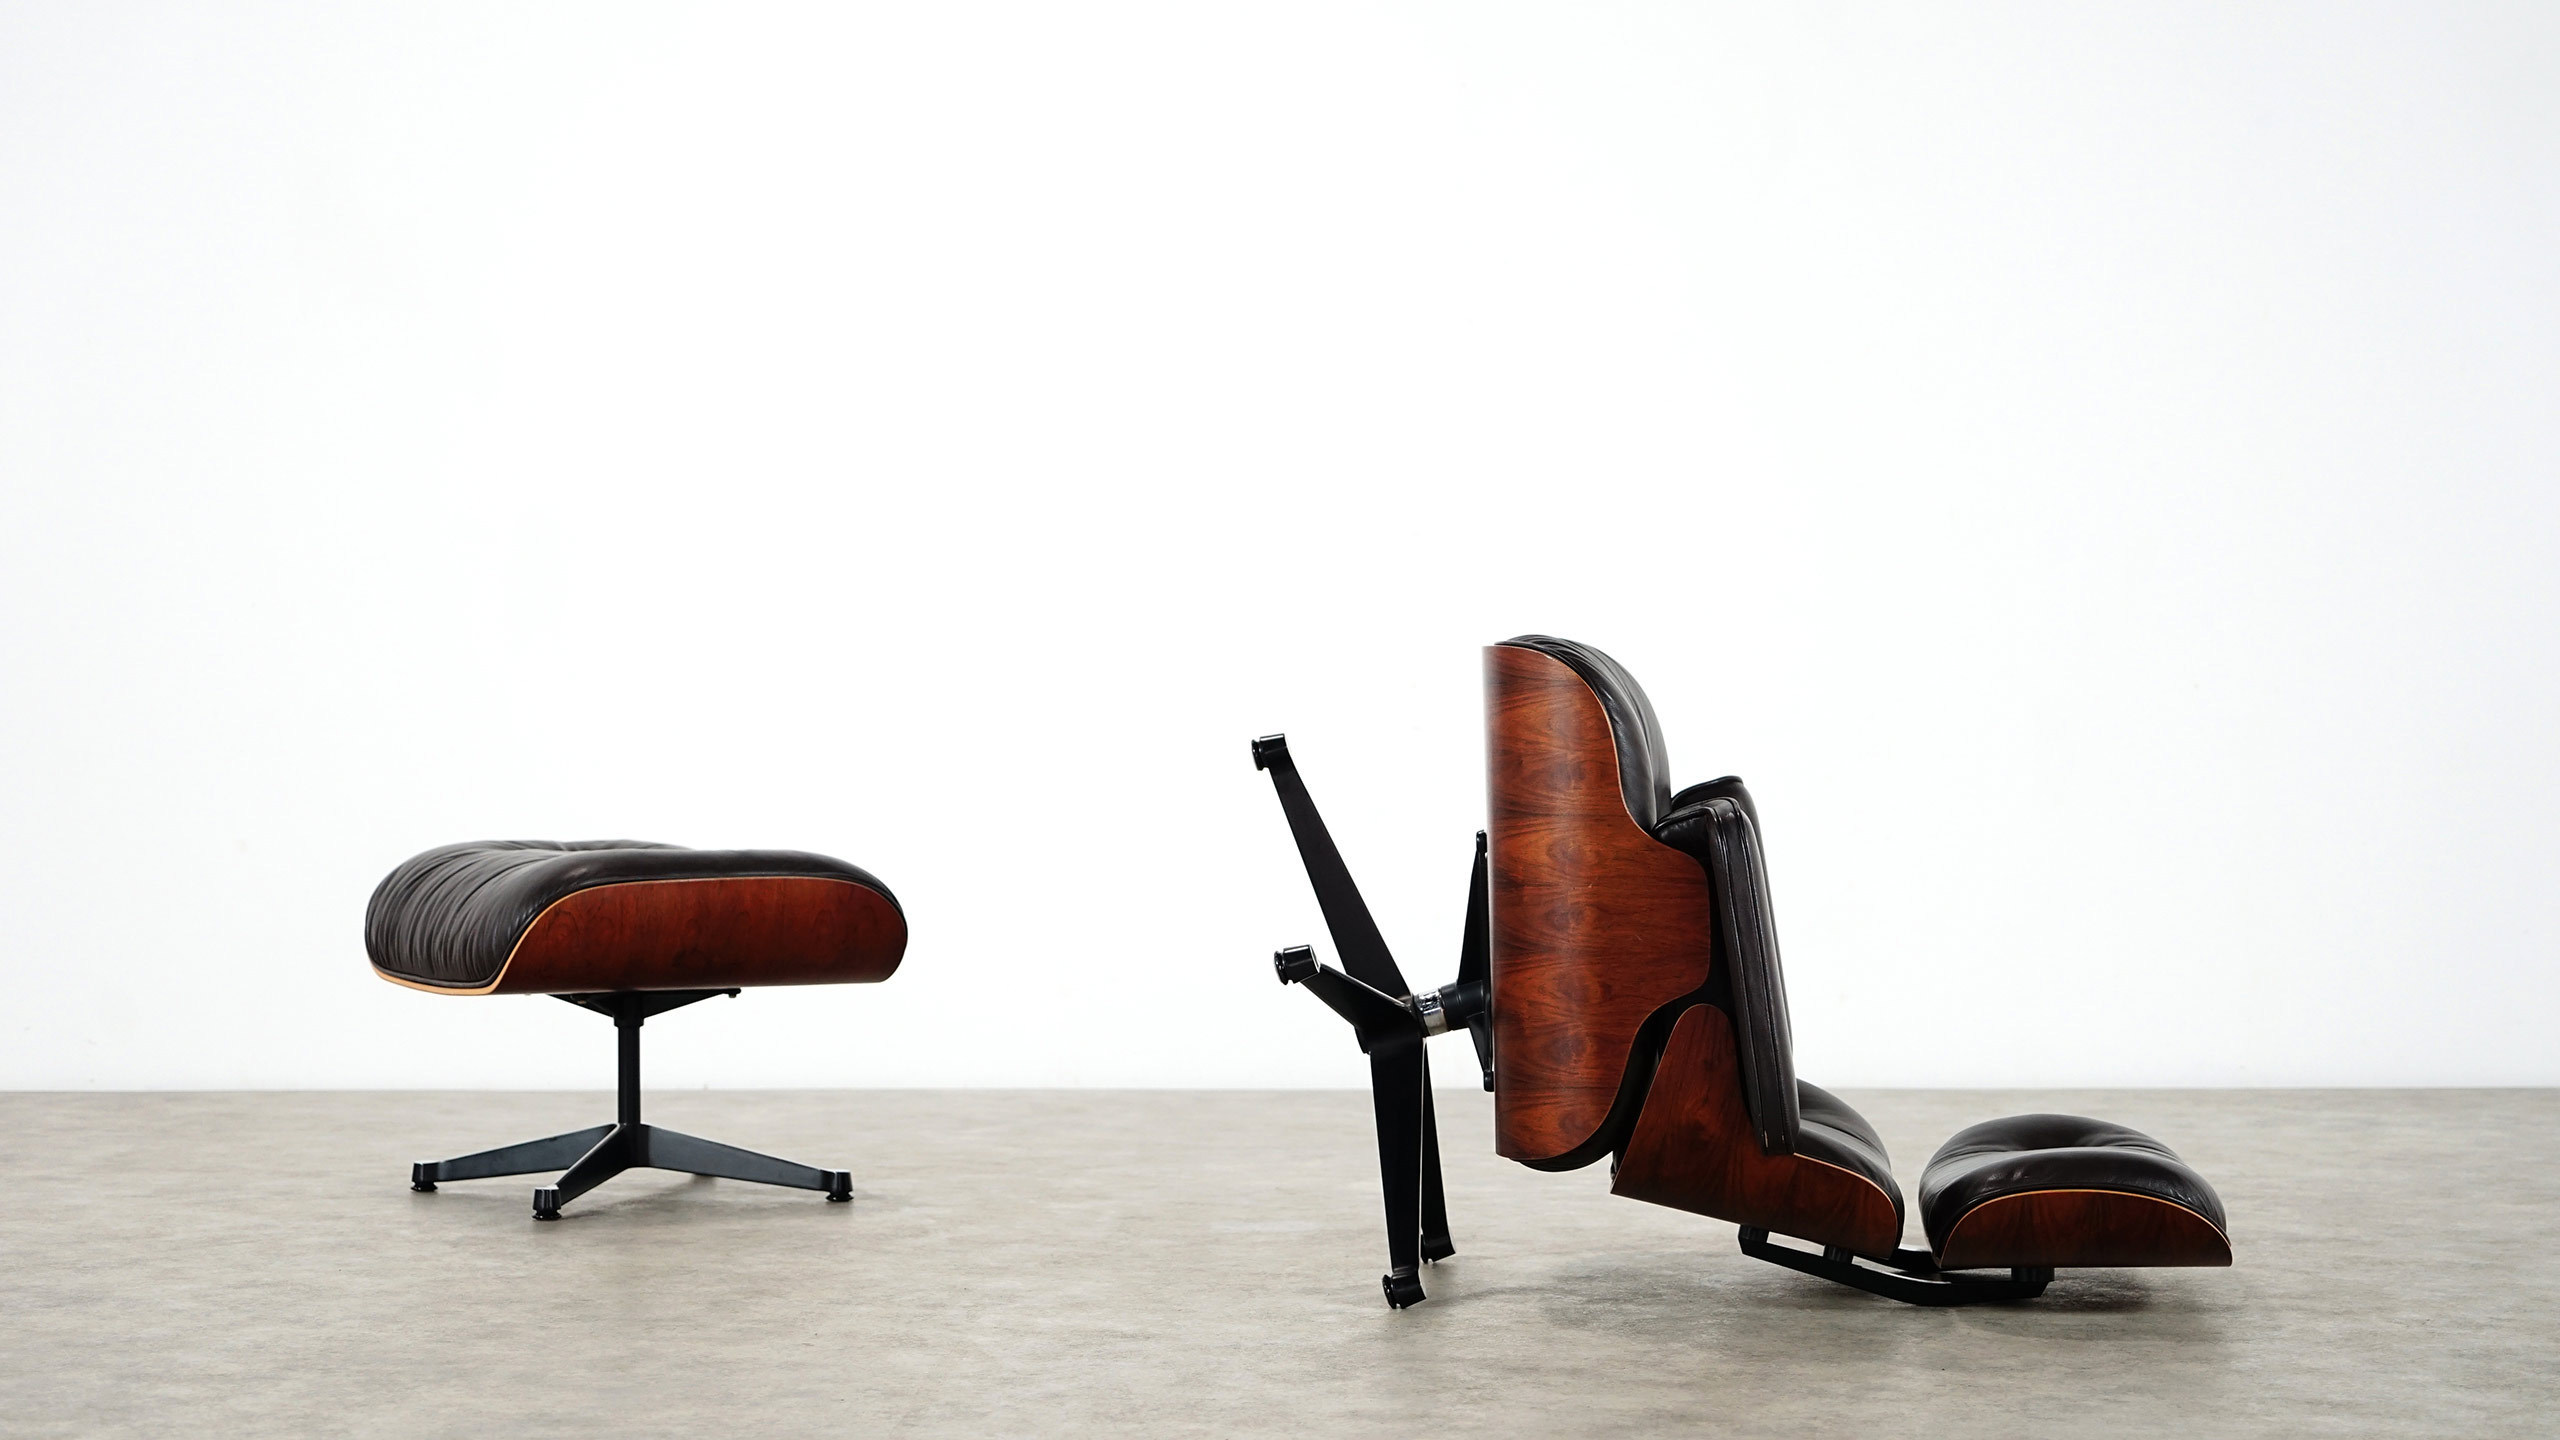 charles eames lounge chair ottoman by herman miller. Black Bedroom Furniture Sets. Home Design Ideas